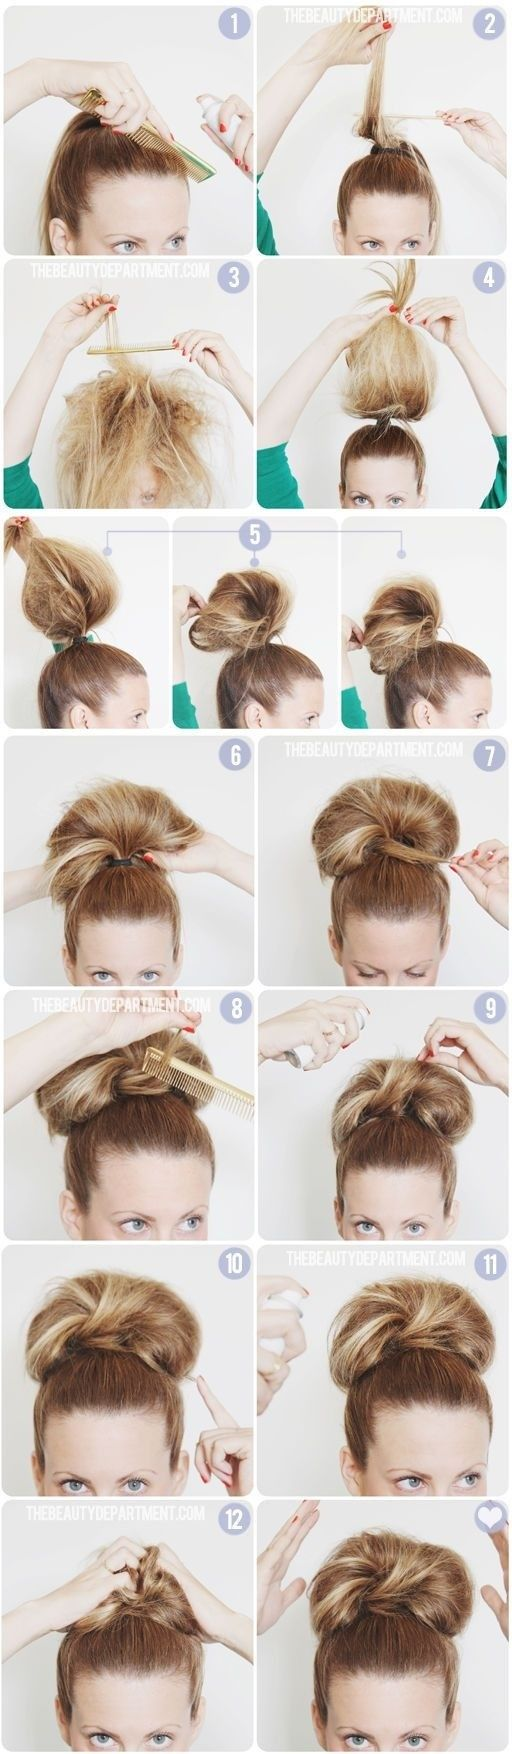 1251 best Beauty - Hair images on Pinterest | Hair care, Hair makeup ...